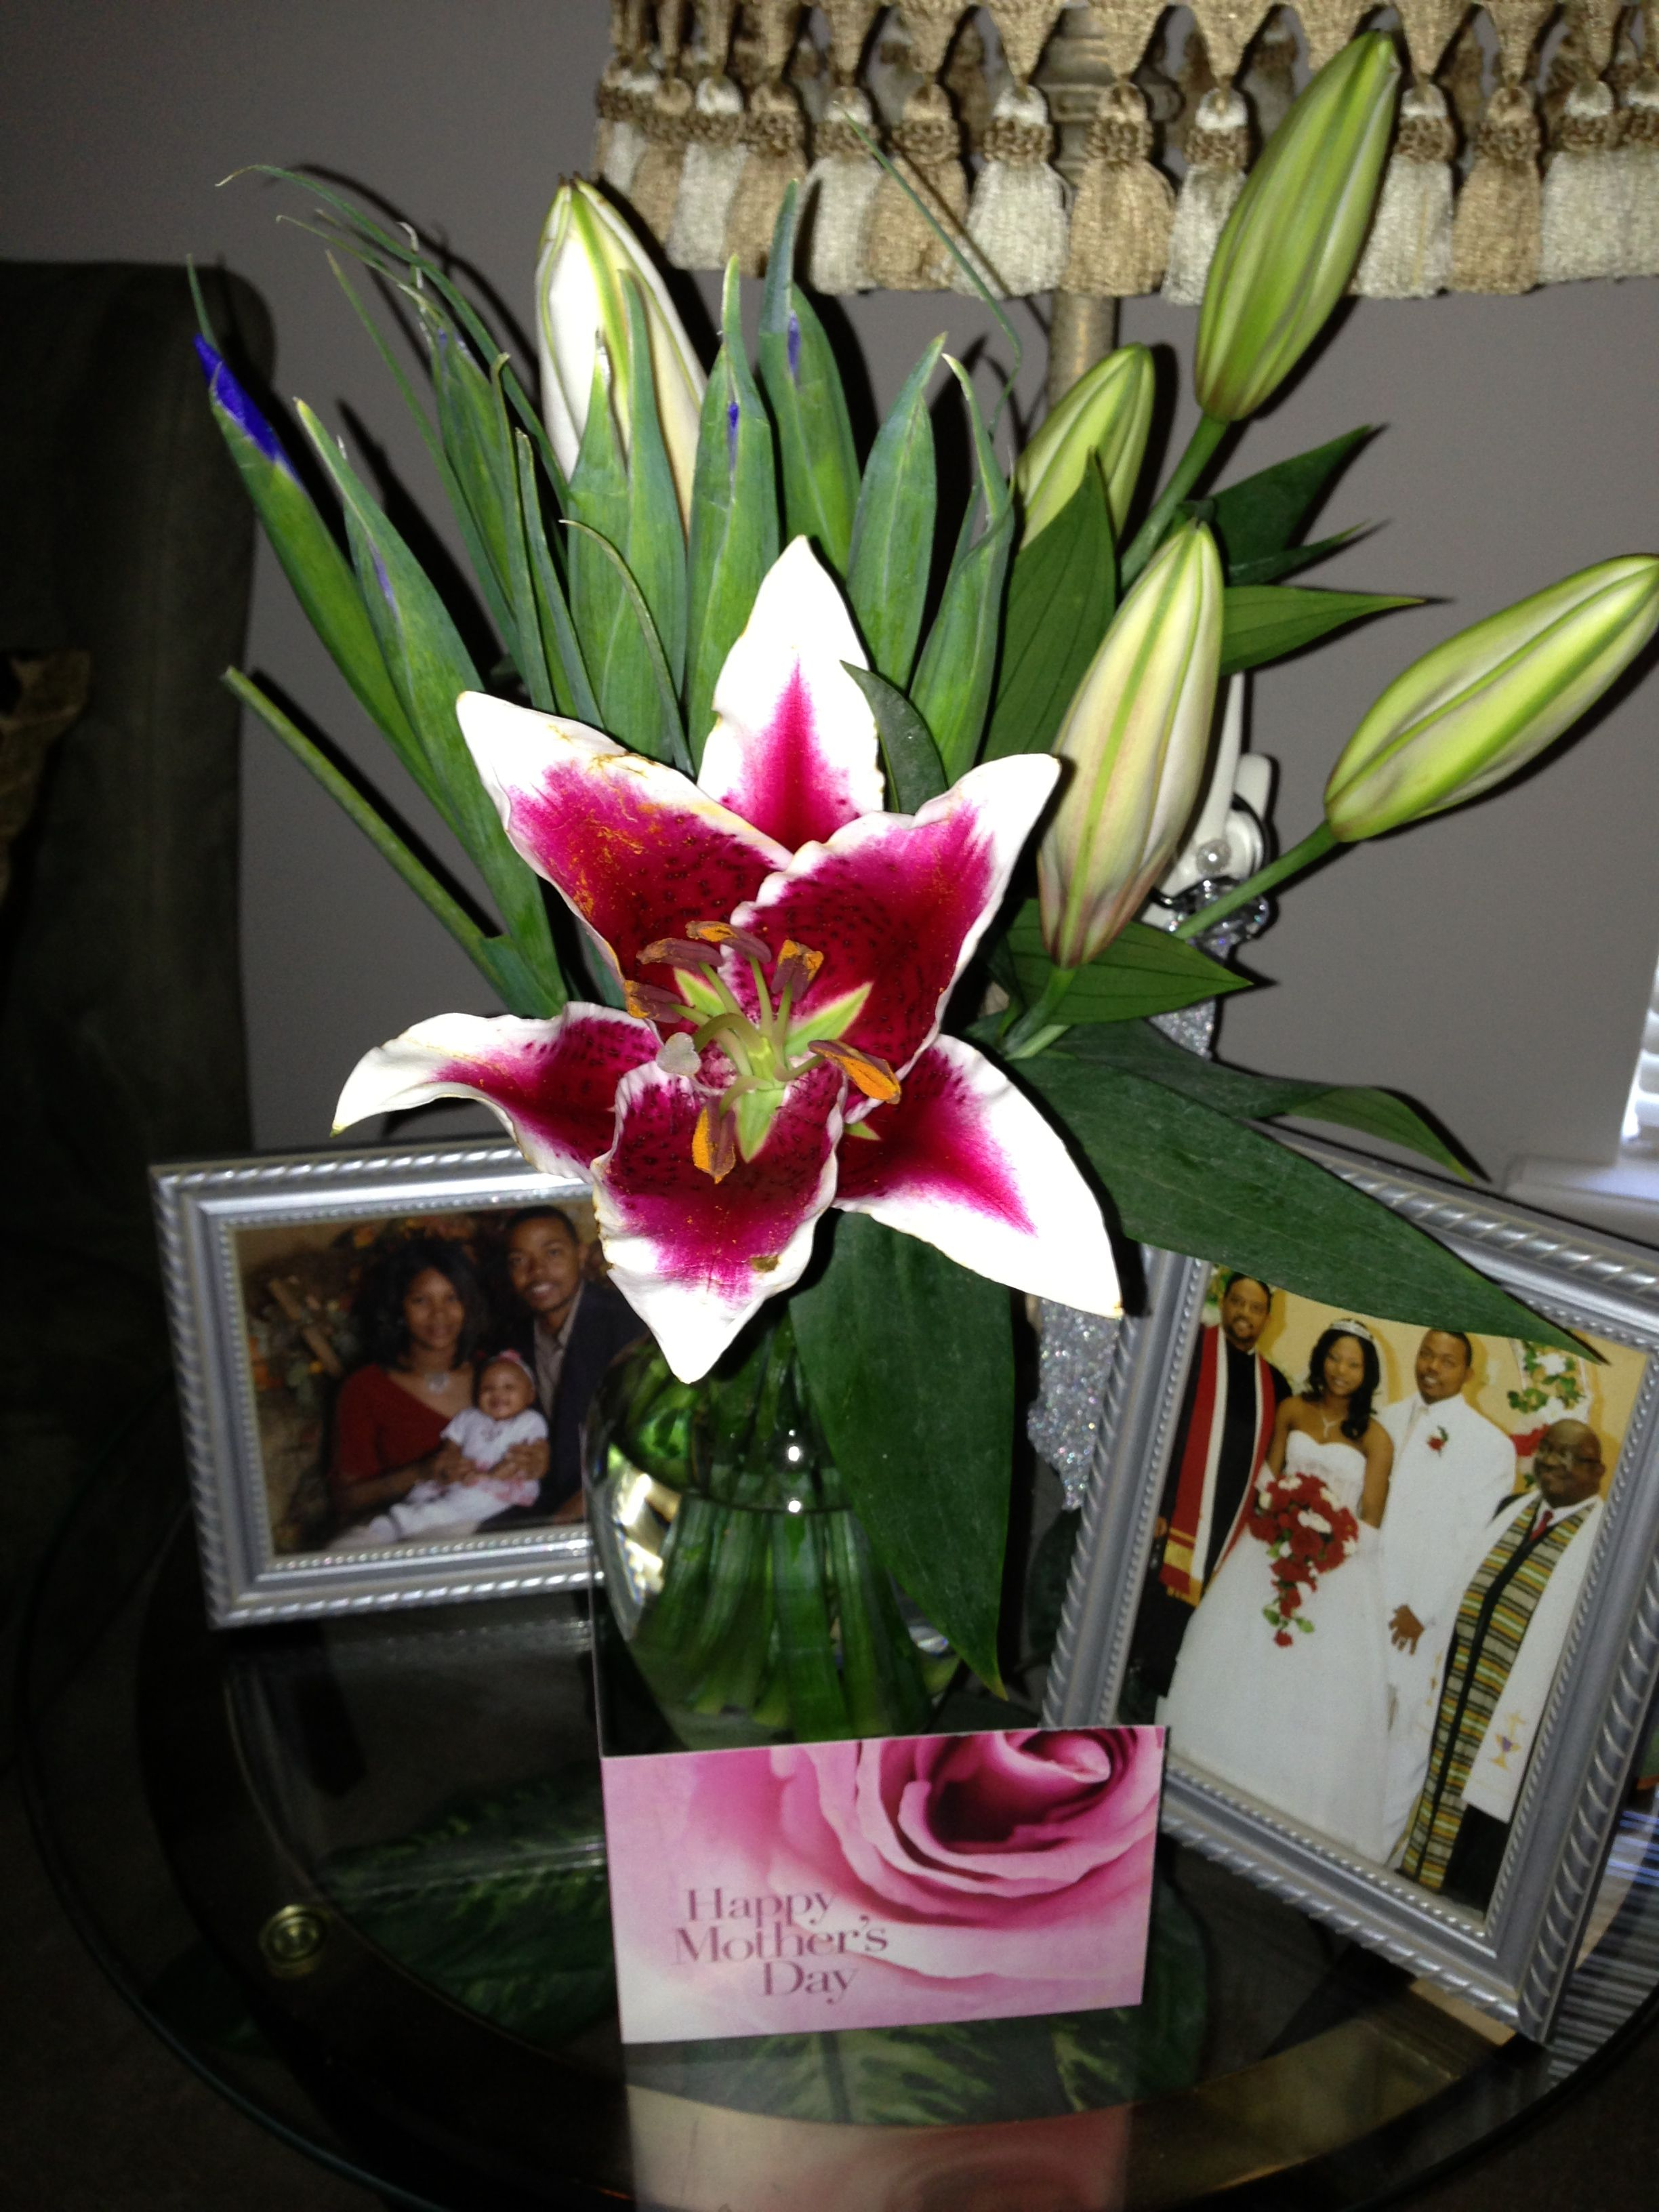 Thanking my hubby for sending me flowers!  On this great mother's day! Although, I fuss about them...cause I can't keep them alive...I love them and the special thought that went behind them;) #fedexreallydeliveronsundaylol